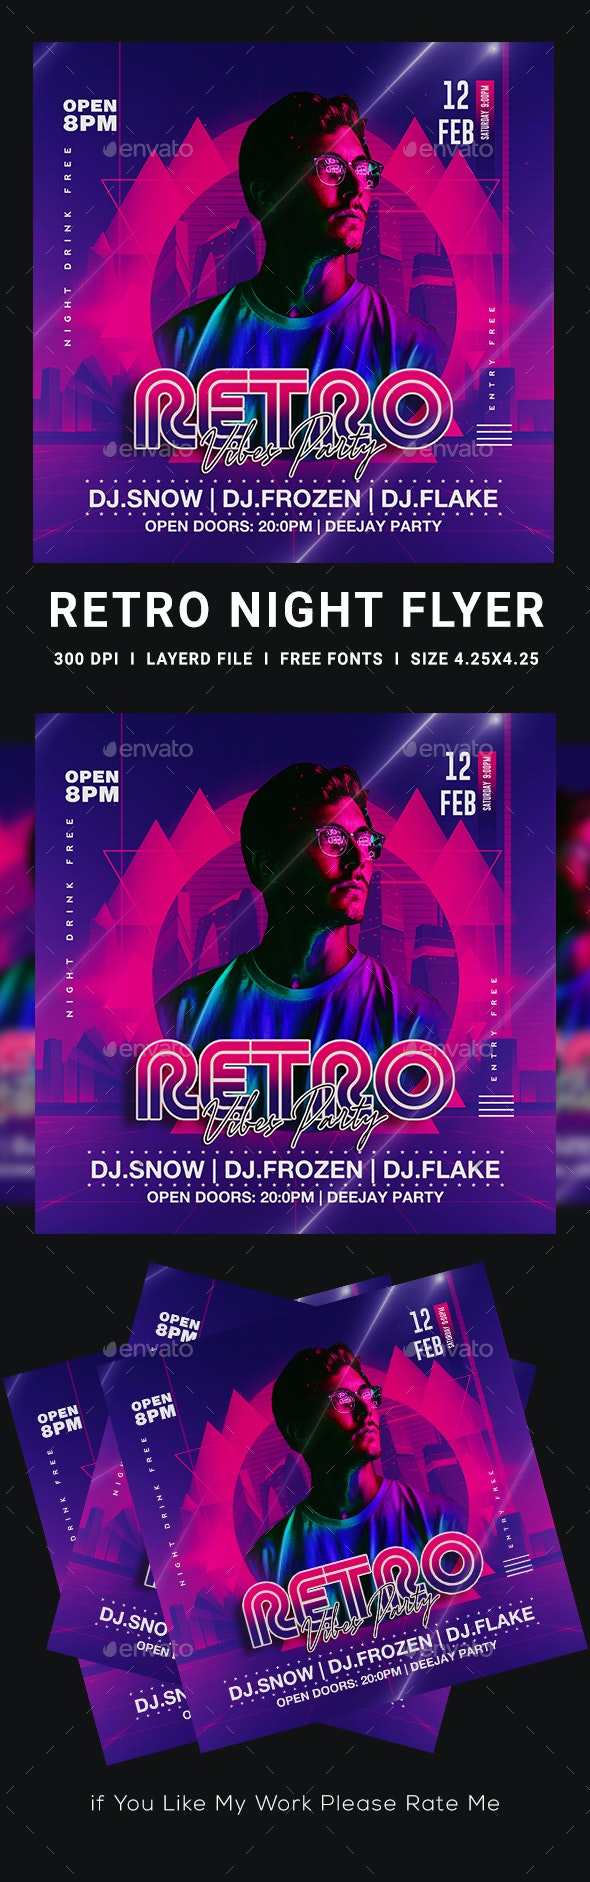 80's Retro Flyer - Clubs & Parties Events